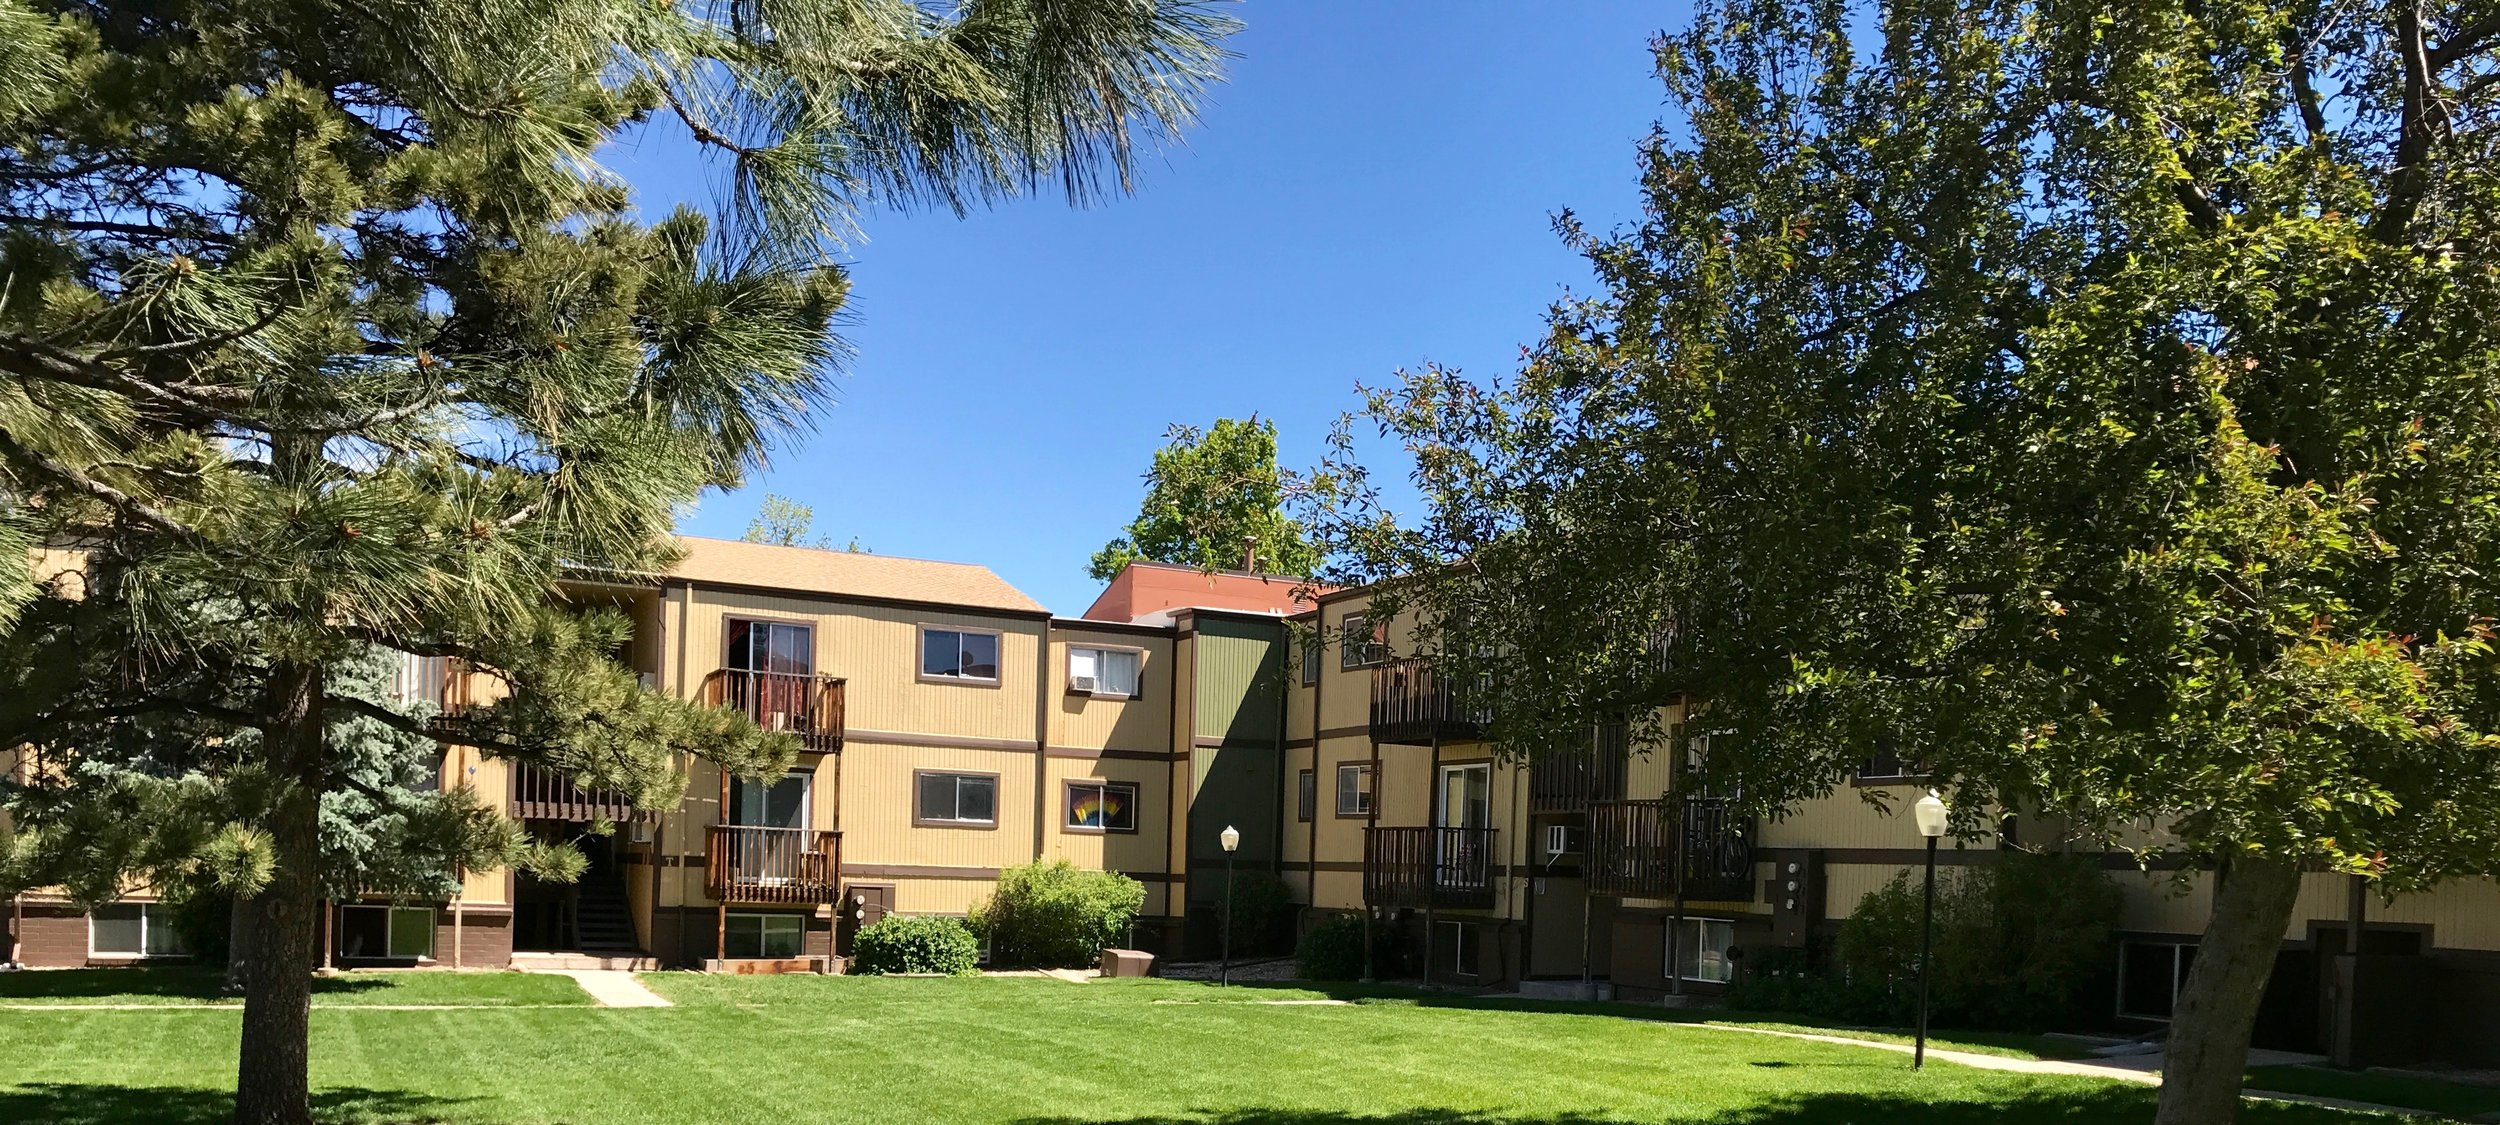 The Golden Pines Condo community is just minutes away from downtown Golden, Colorado